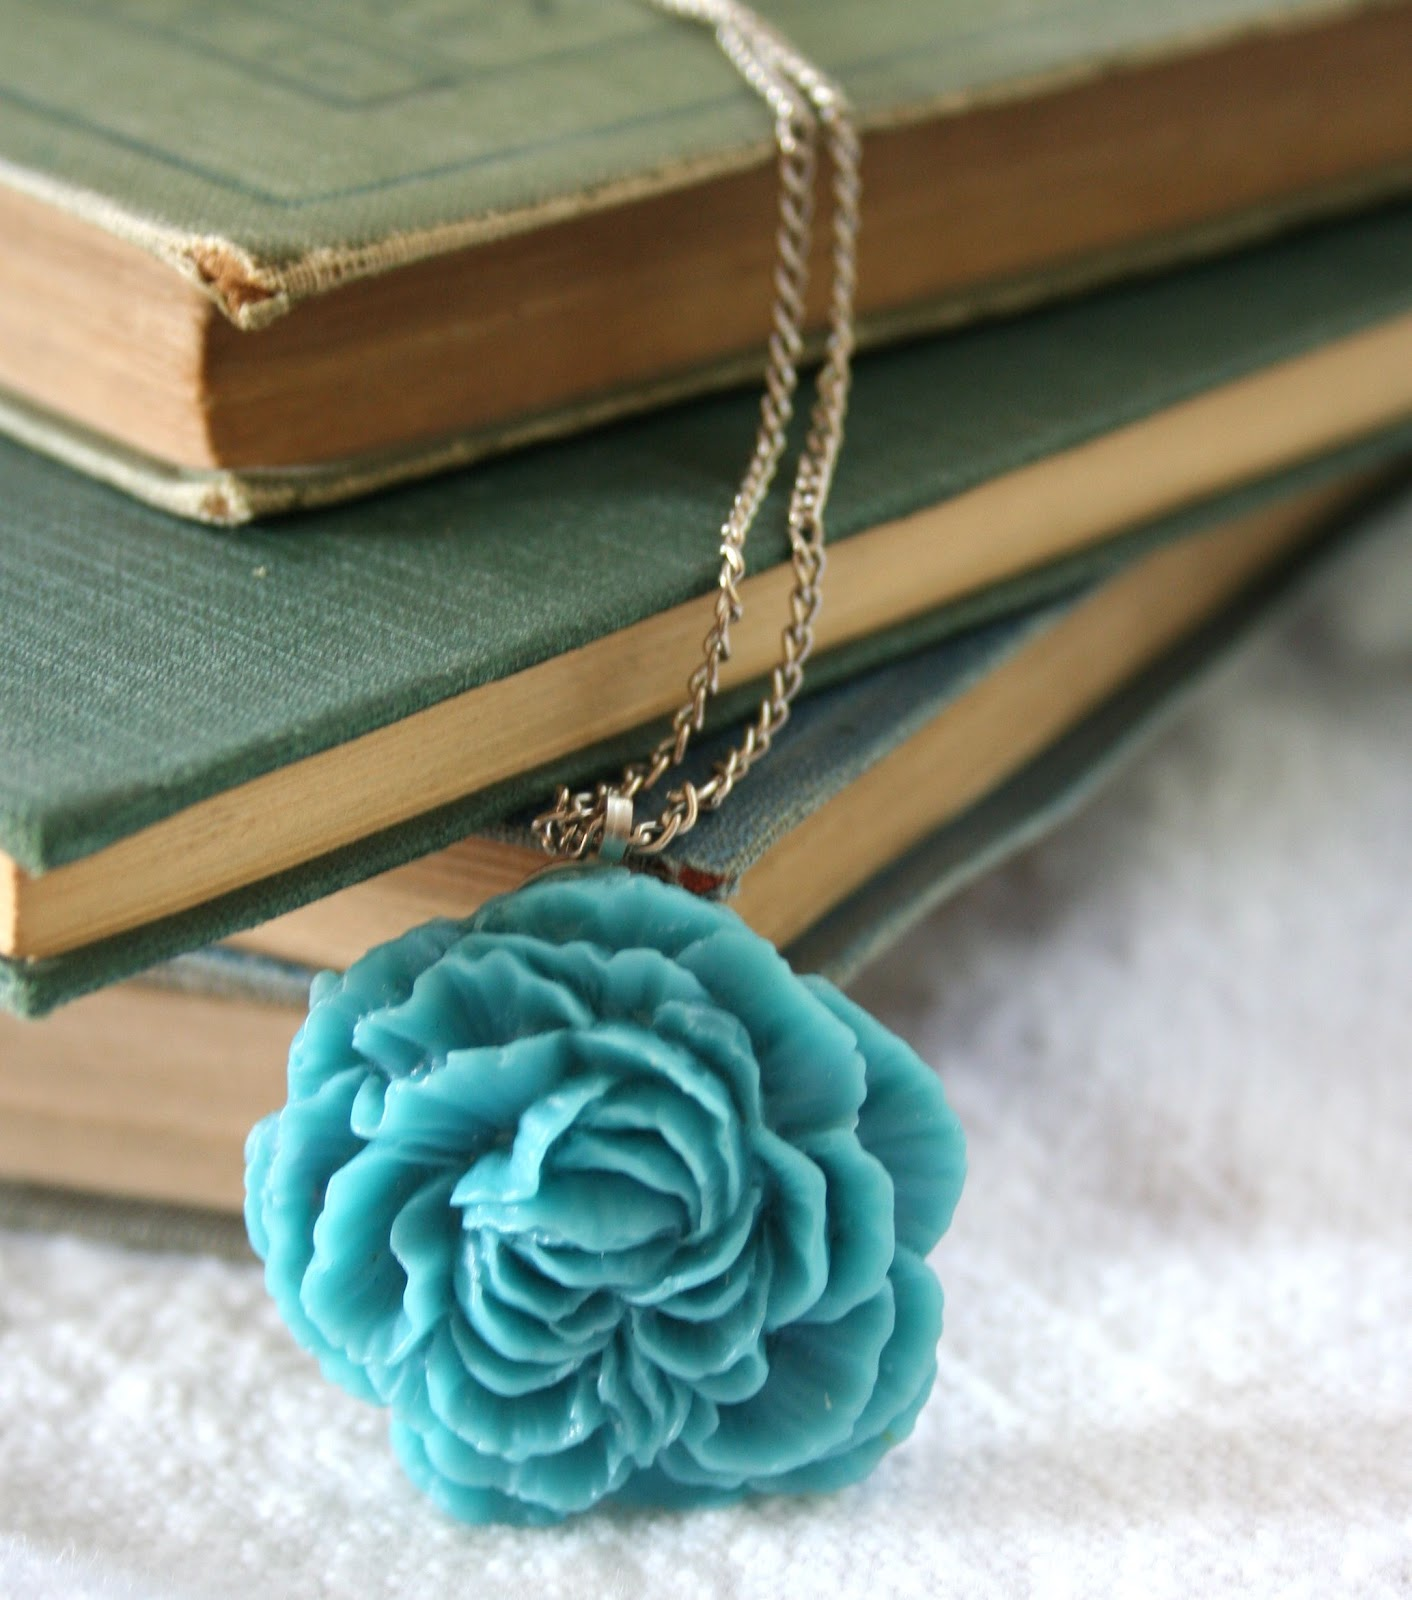 Make Your Own Necklaces And Jewelry At Home: Making Your Own Cabochon Jewelry & A Giveaway!